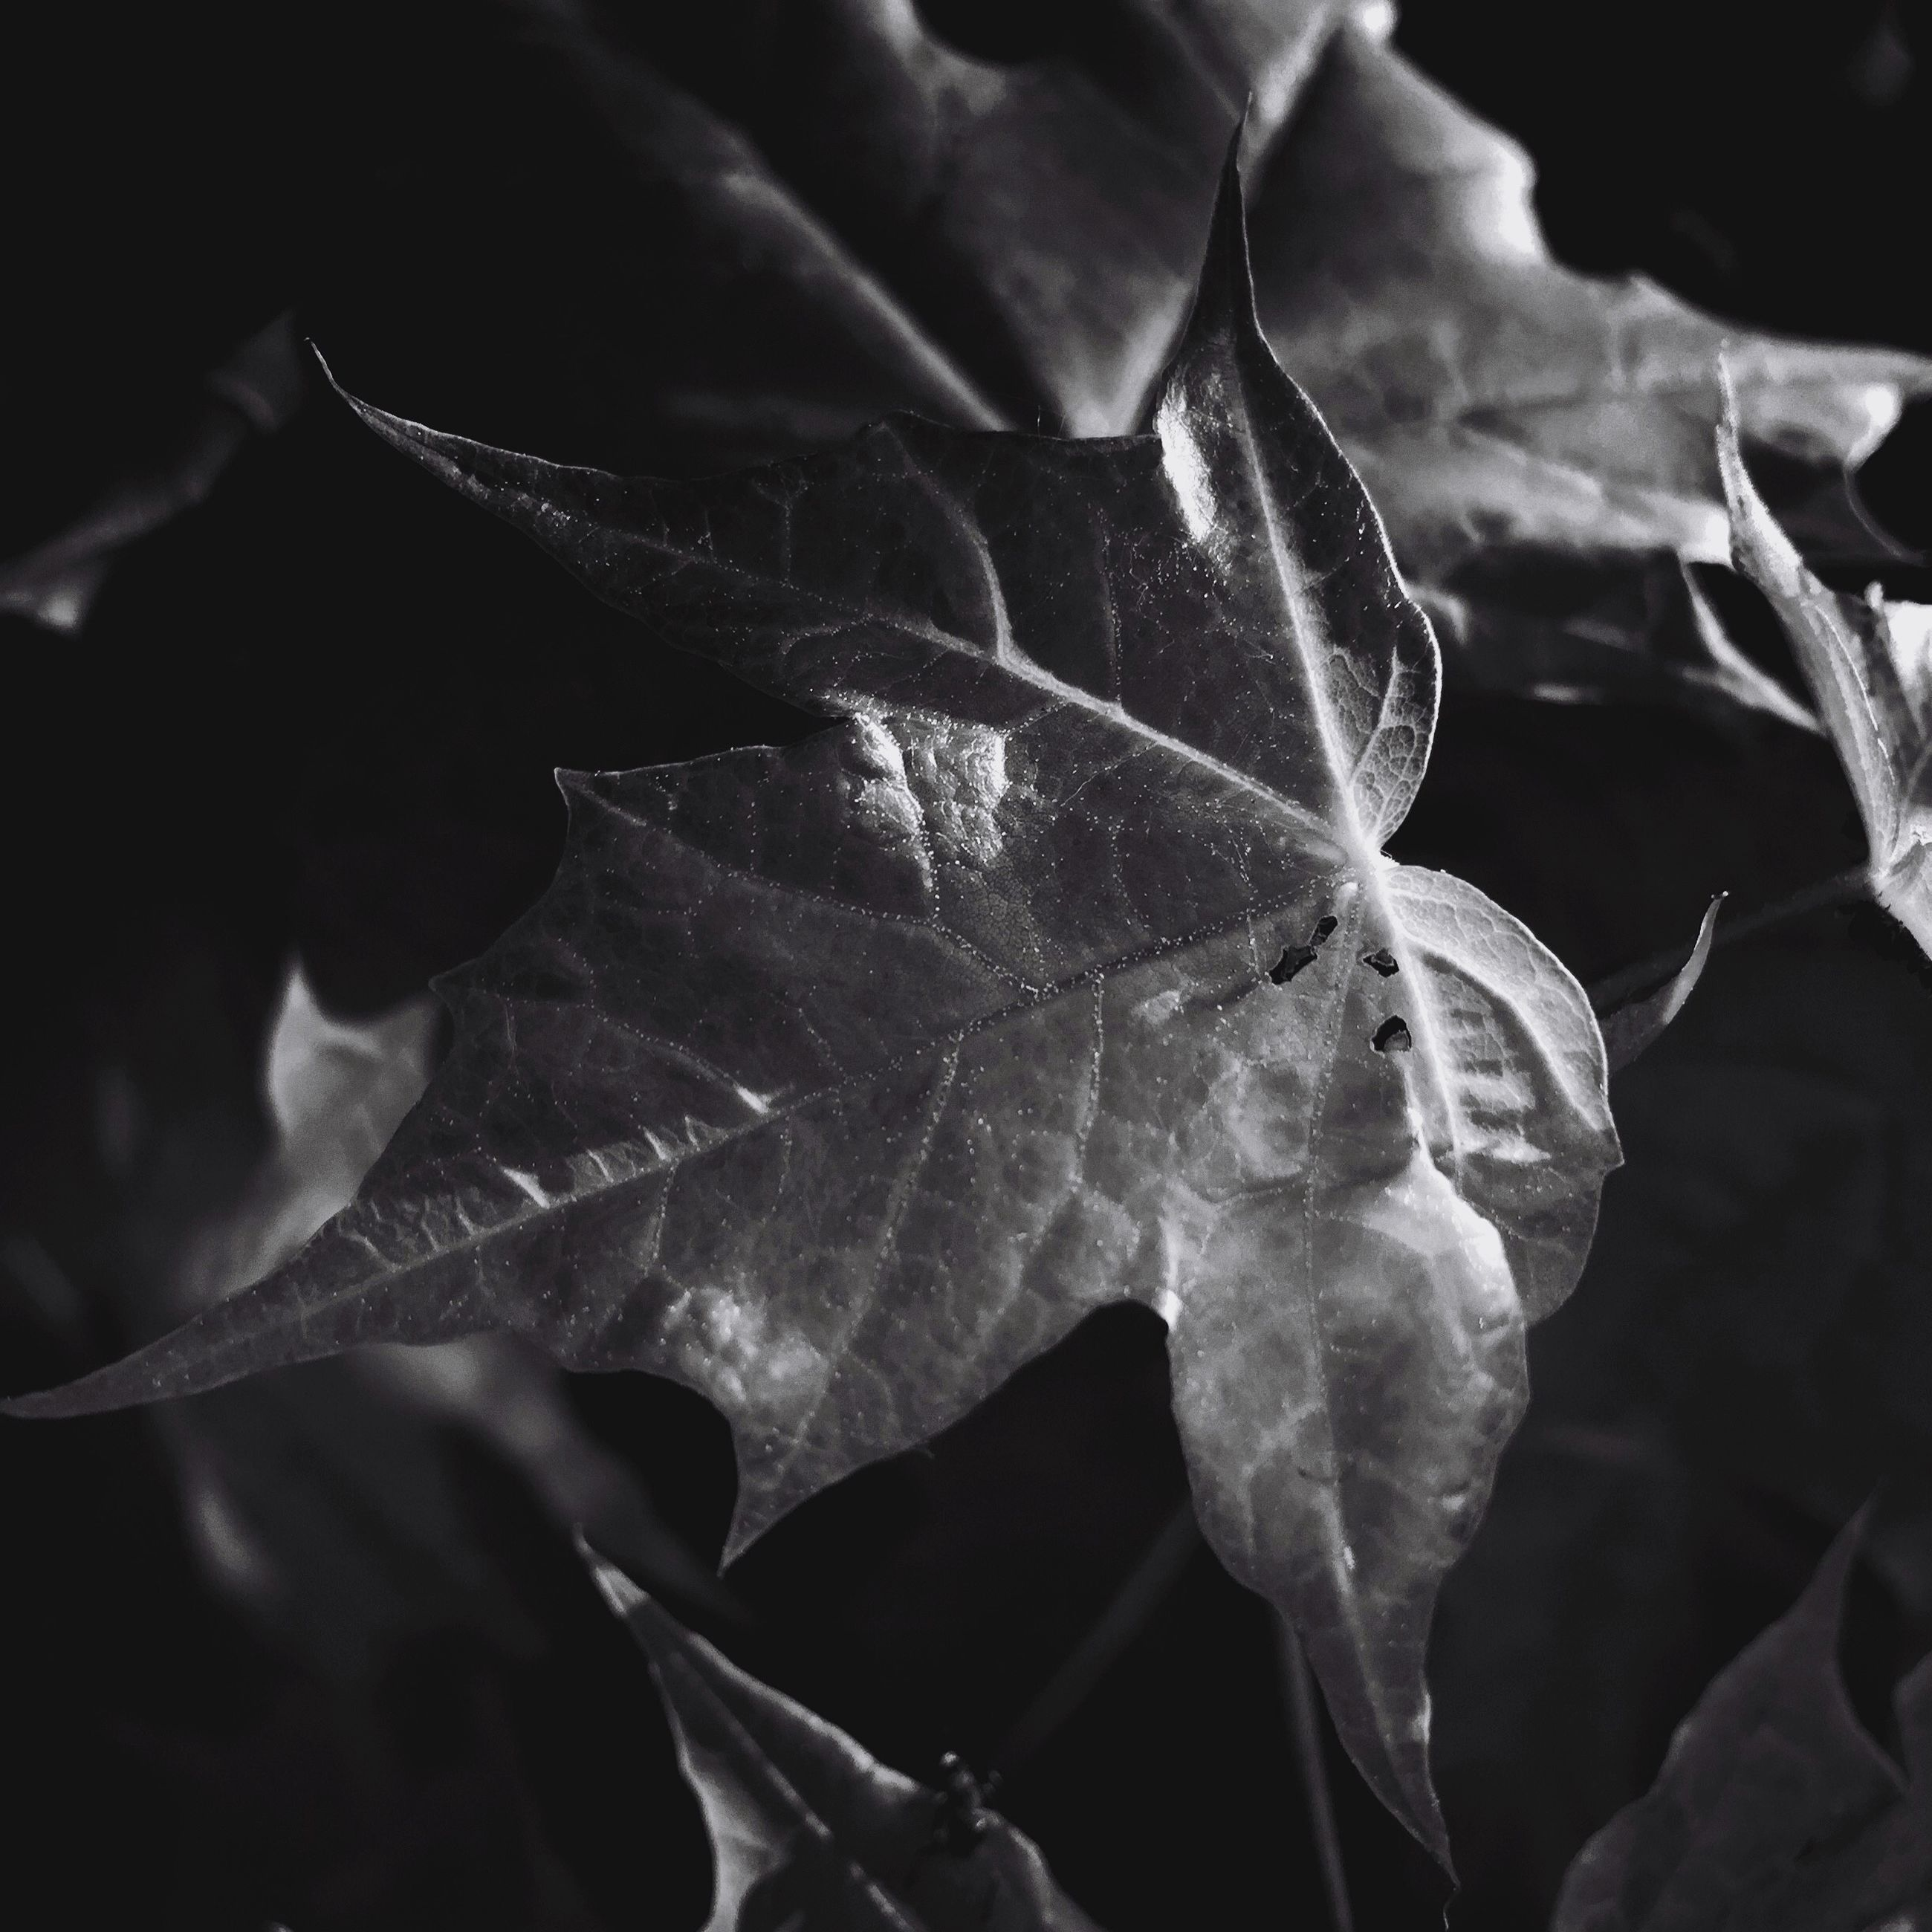 leaf, close-up, fragility, leaf vein, nature, beauty in nature, growth, drop, plant, natural pattern, freshness, focus on foreground, wet, water, outdoors, petal, leaves, no people, season, flower